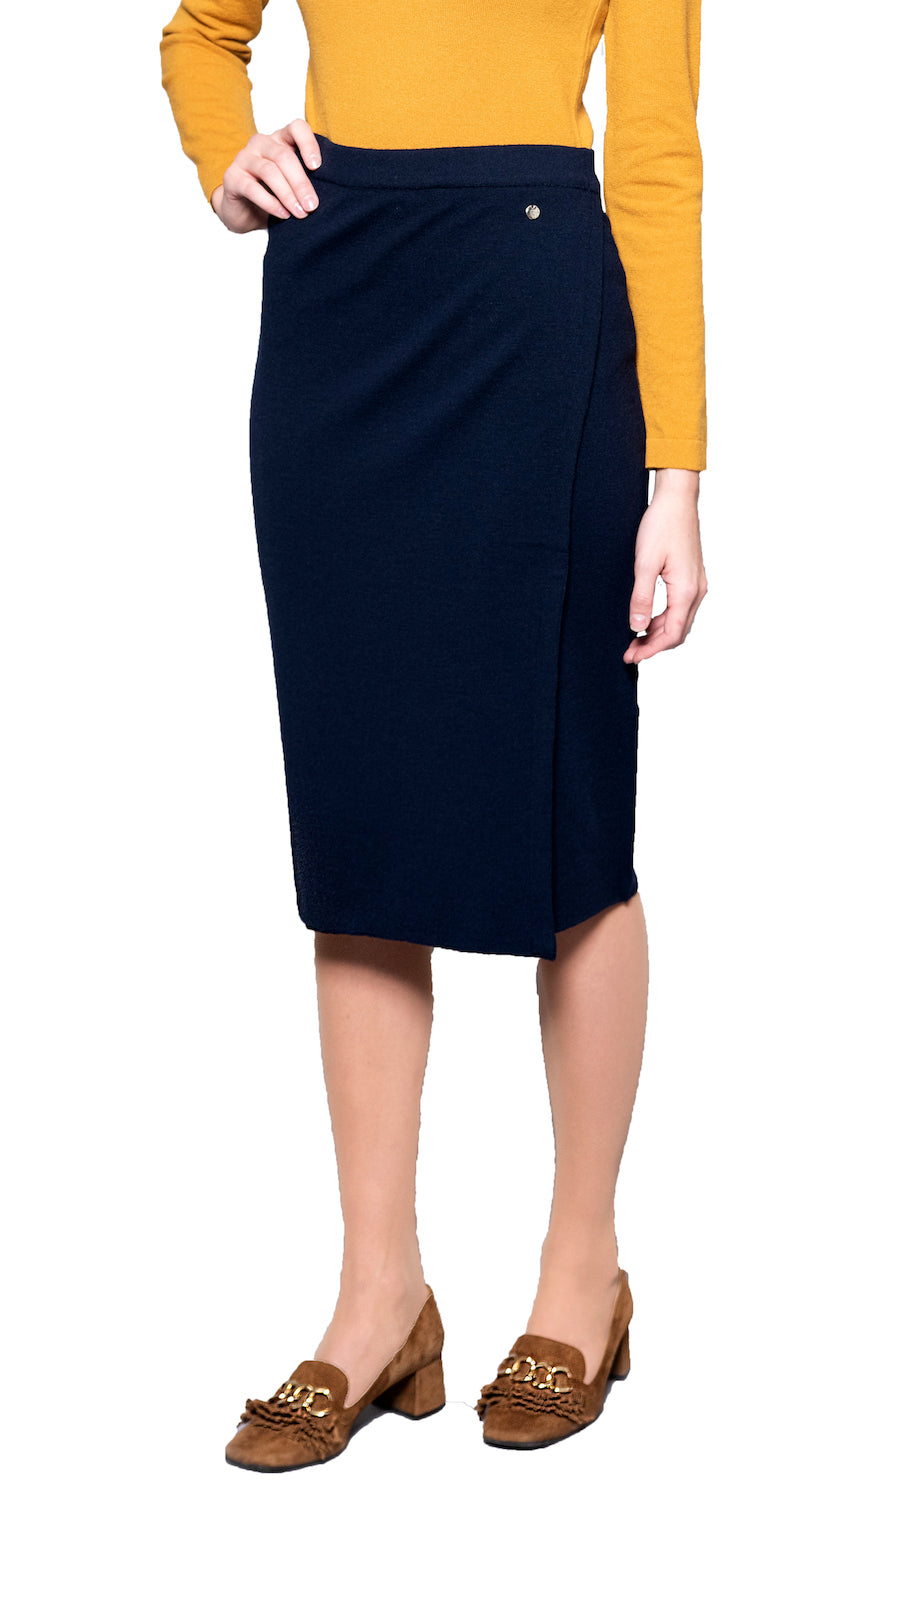 CONTEMPO Sylvie Mock-Wrap Knitted Skirt, Navy